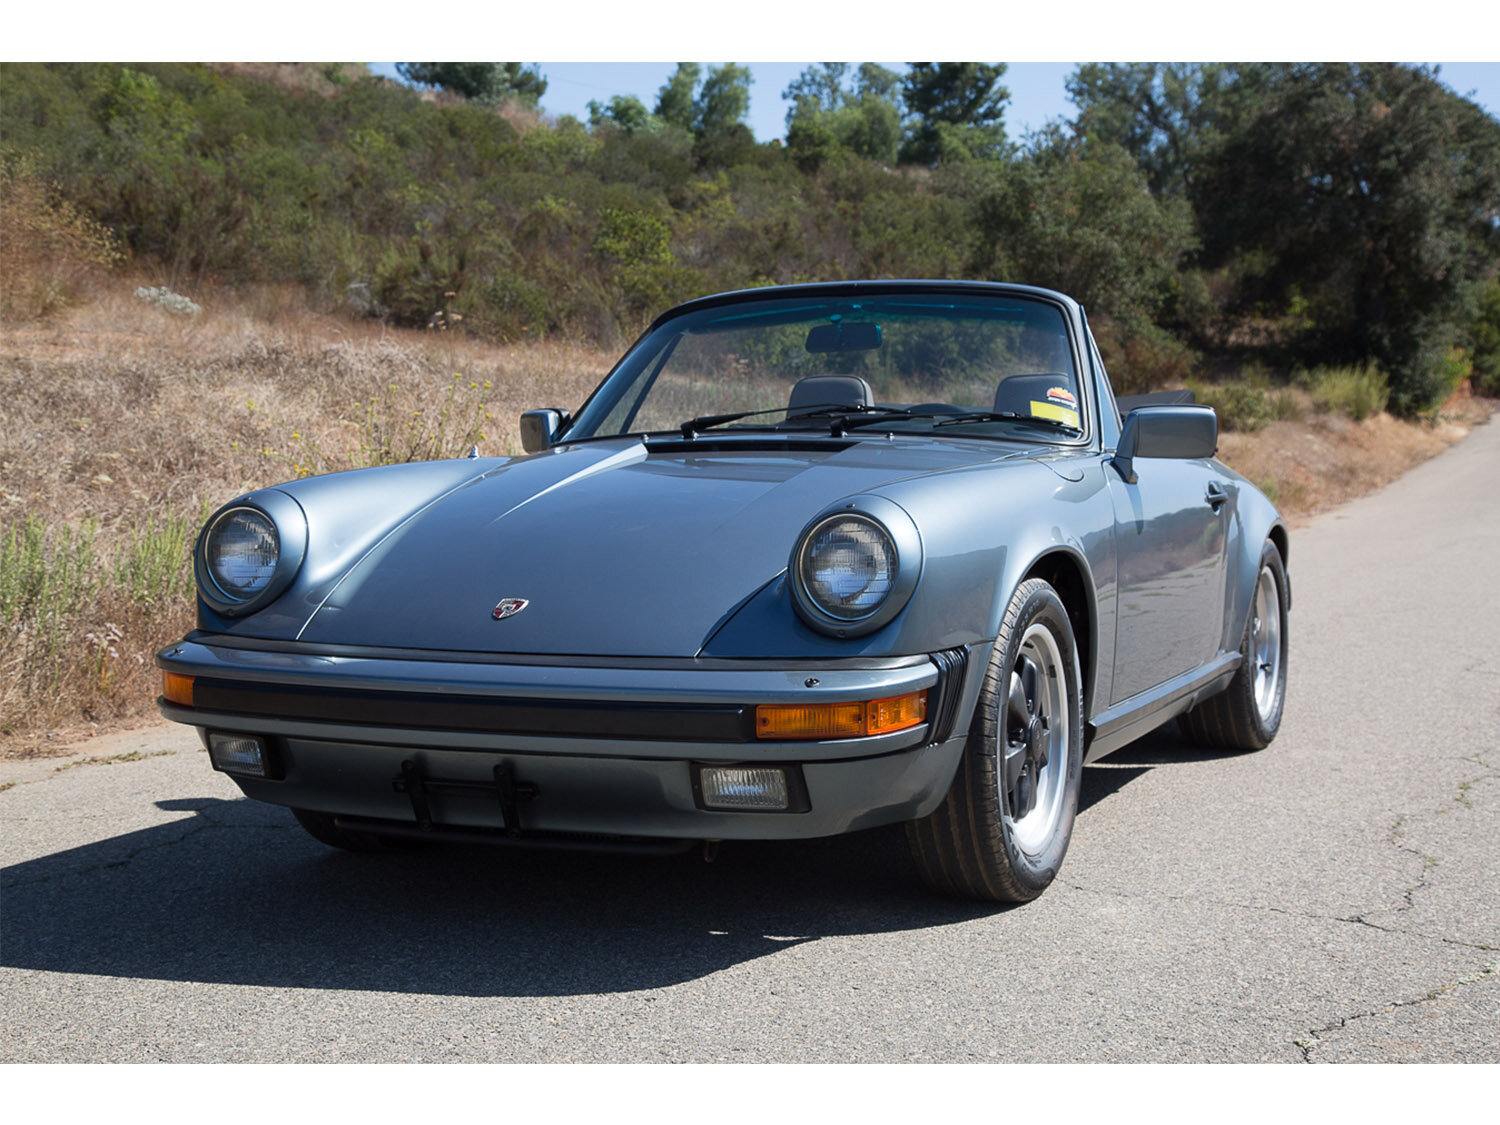 1984-carrera-cabriolet-slate-blue-911-sc-for-sale-makellos-classics_0001s_0000s_0039_1B7A6584.jpg